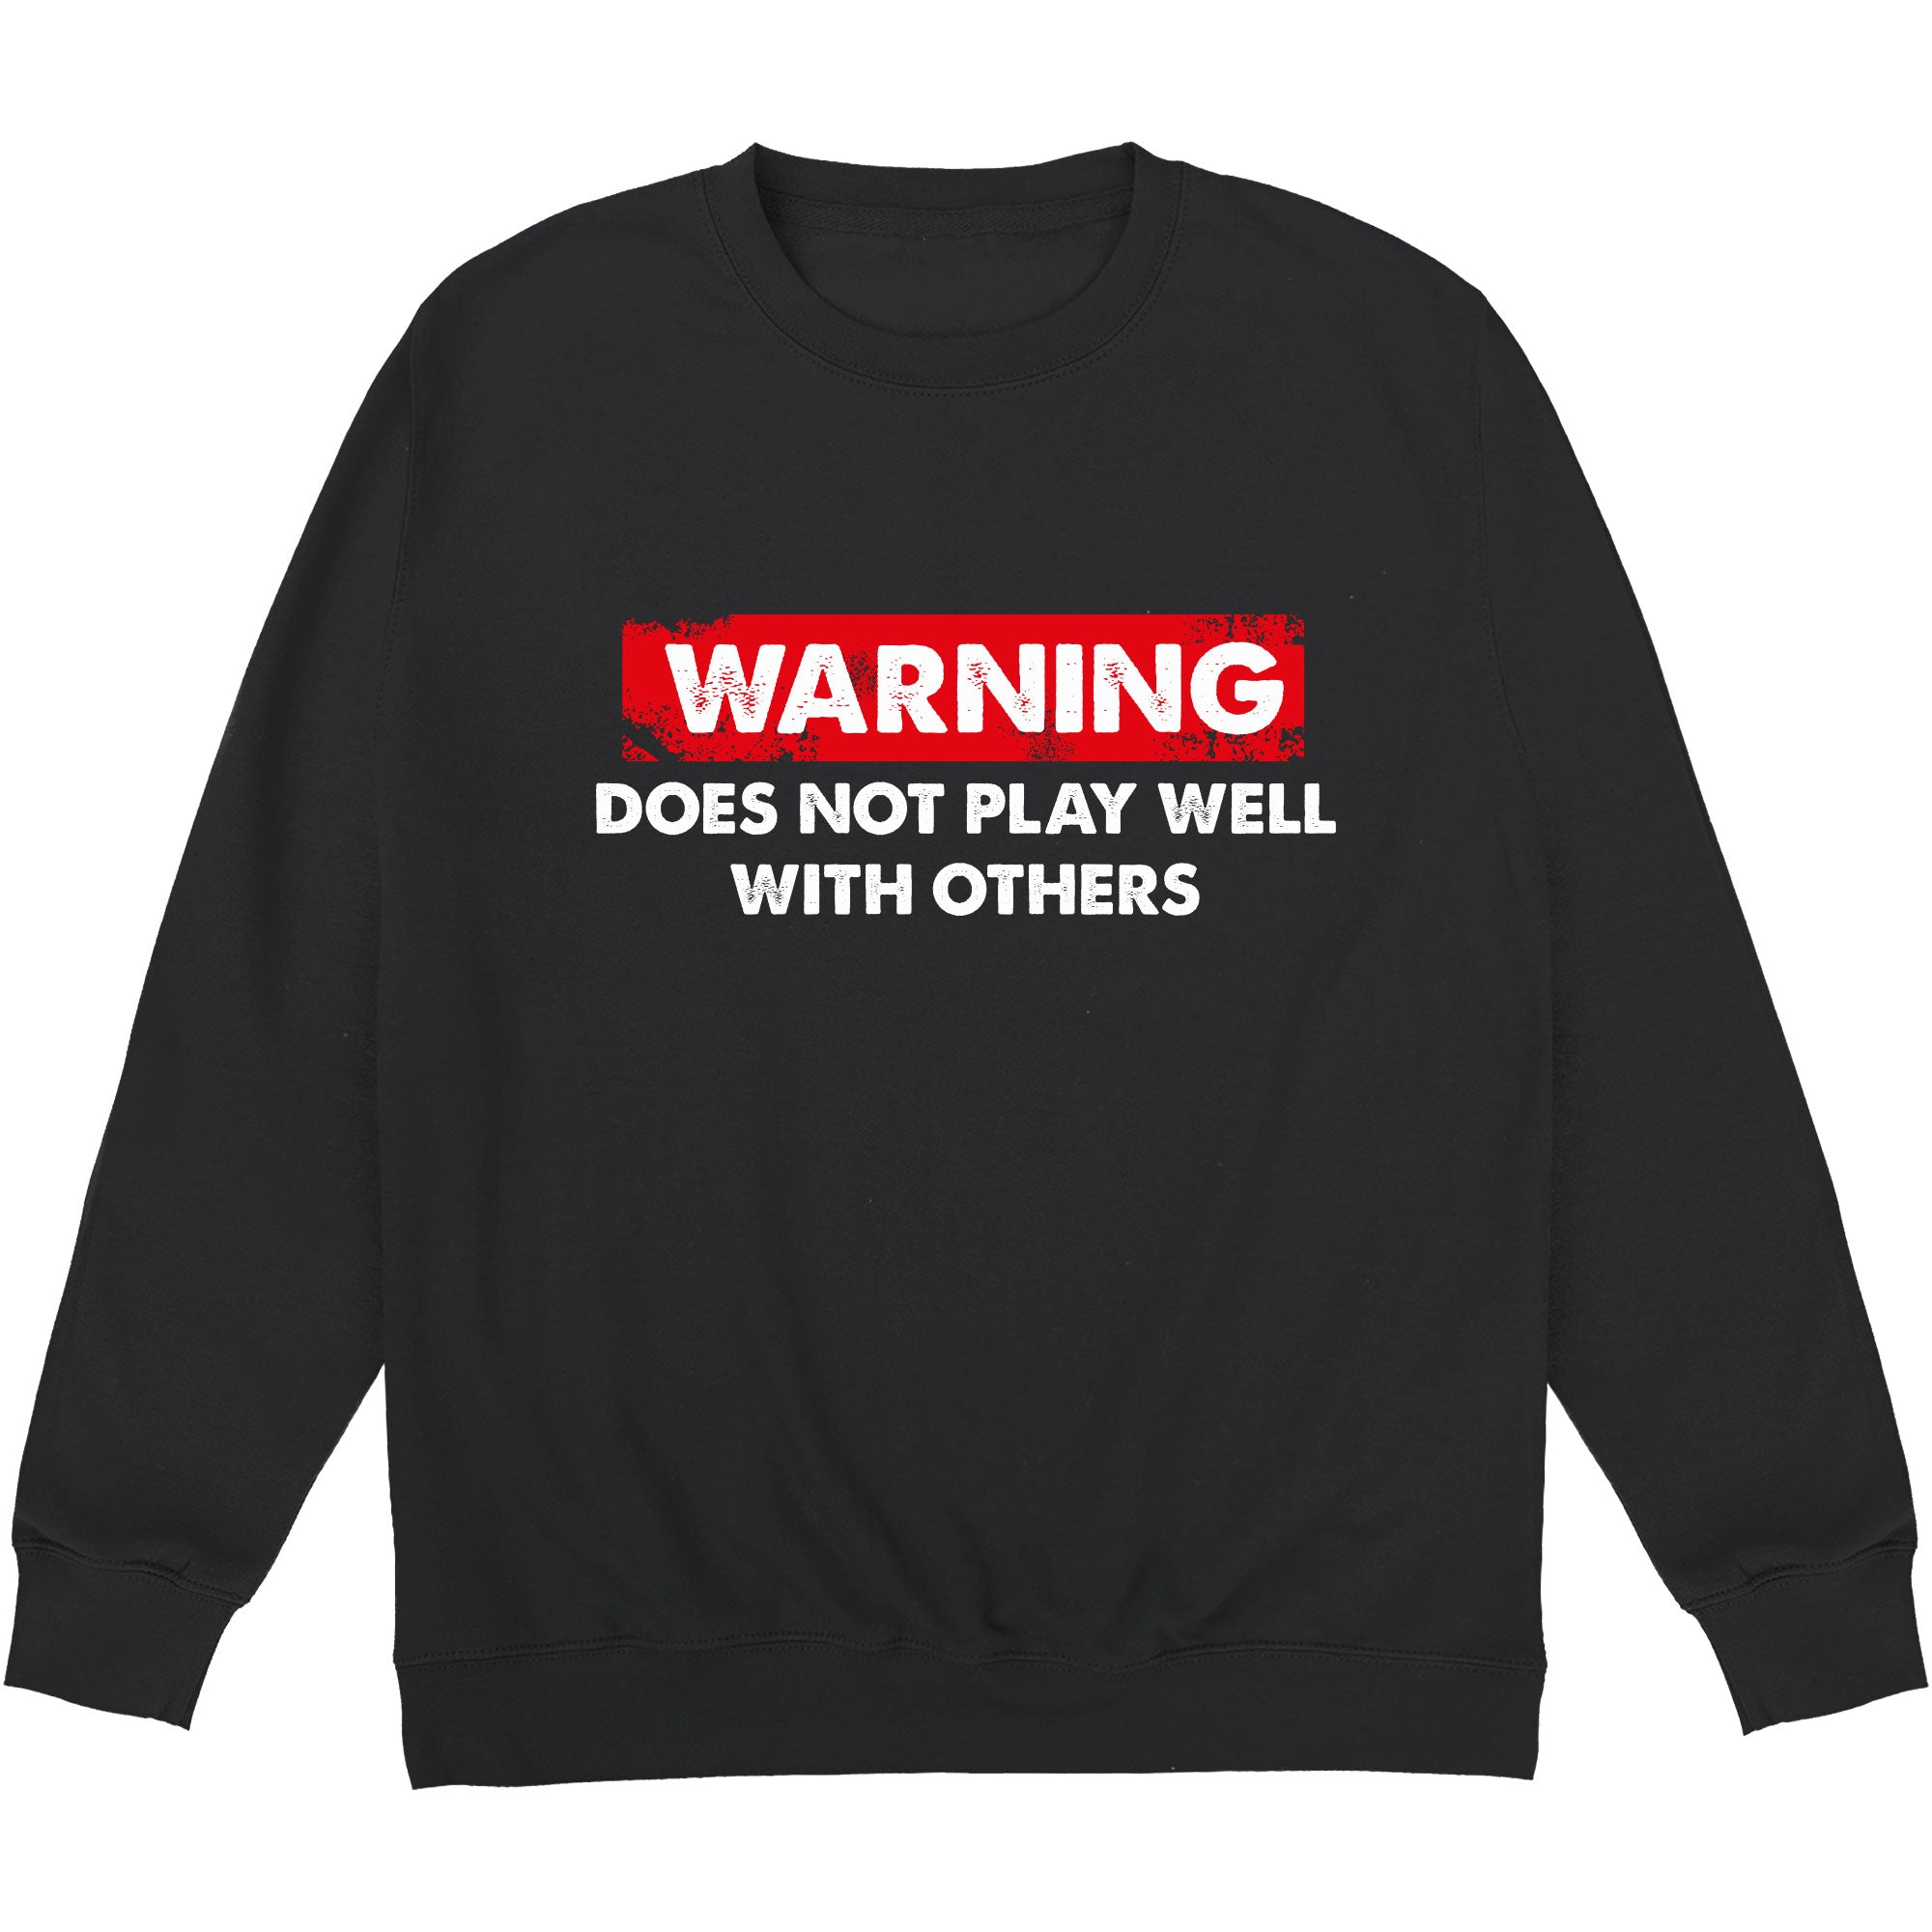 CHEAP Does Not Play Well With Others Sweatshirt 24322676093 – Clothing Accessories